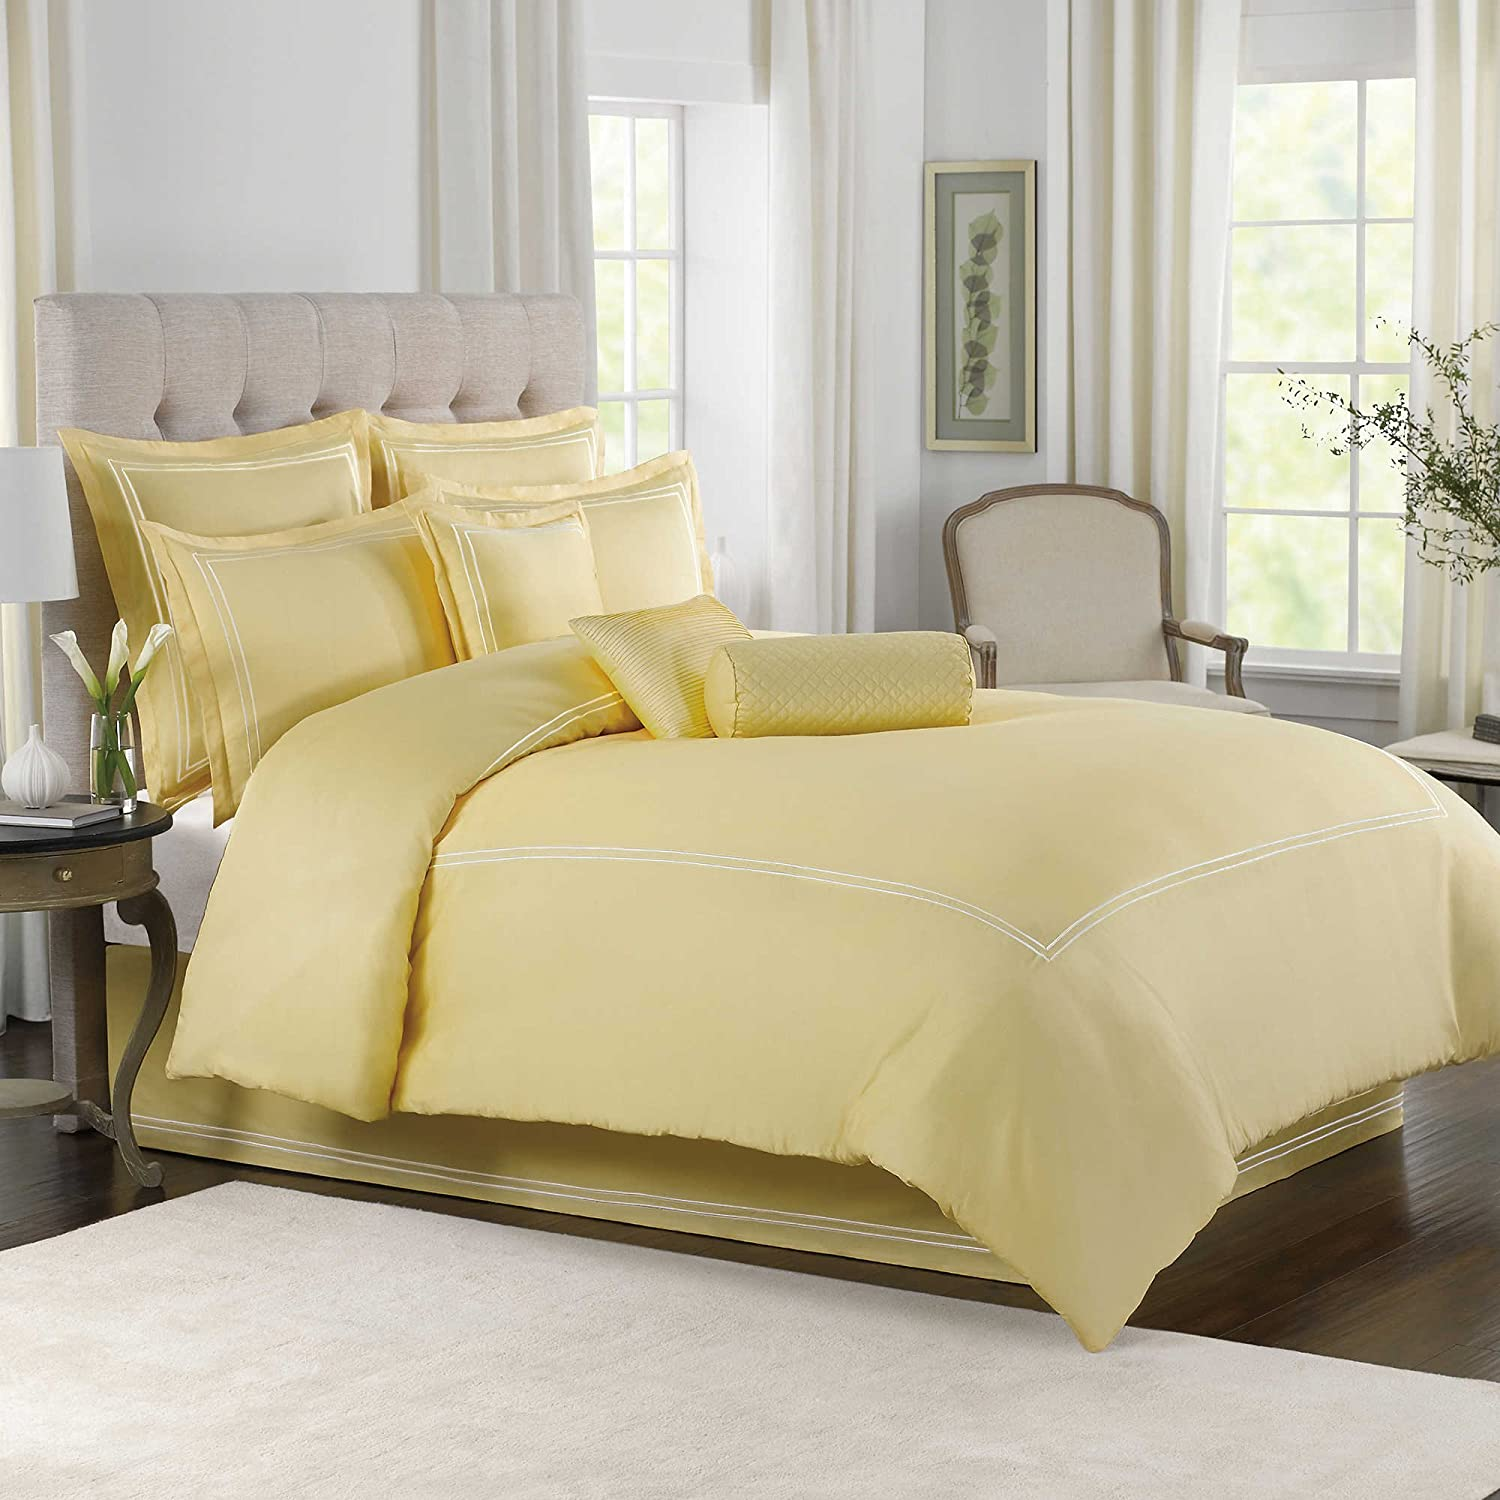 sets twin target superblackbird yellow sheets comforter solid info